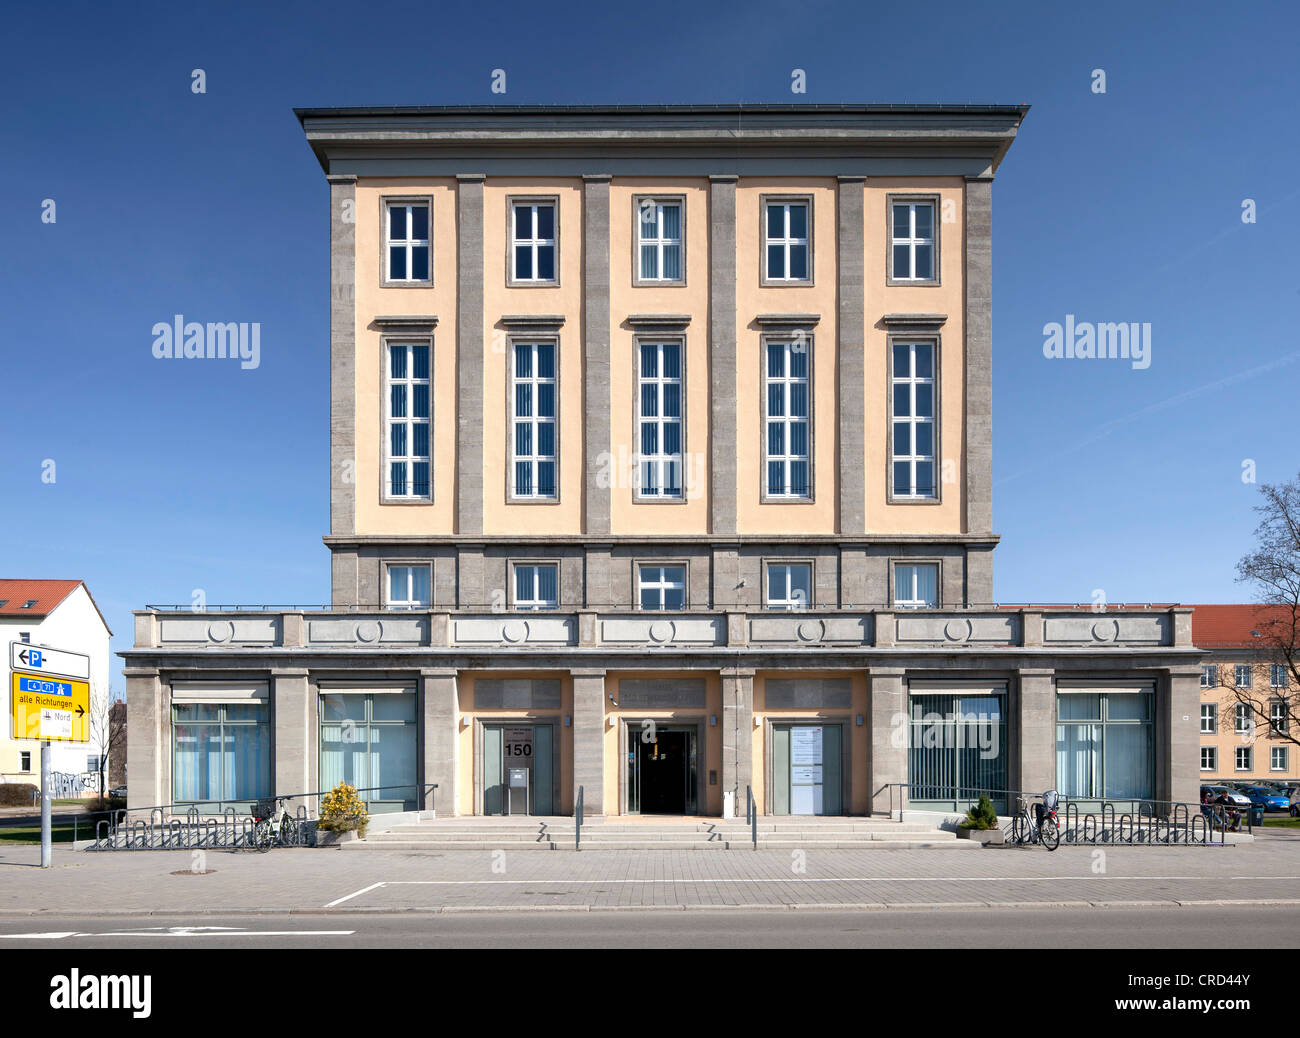 Union House, House of Social Services, Erfurt, Thuringia, Germany, Europe, PublicGround - Stock Image